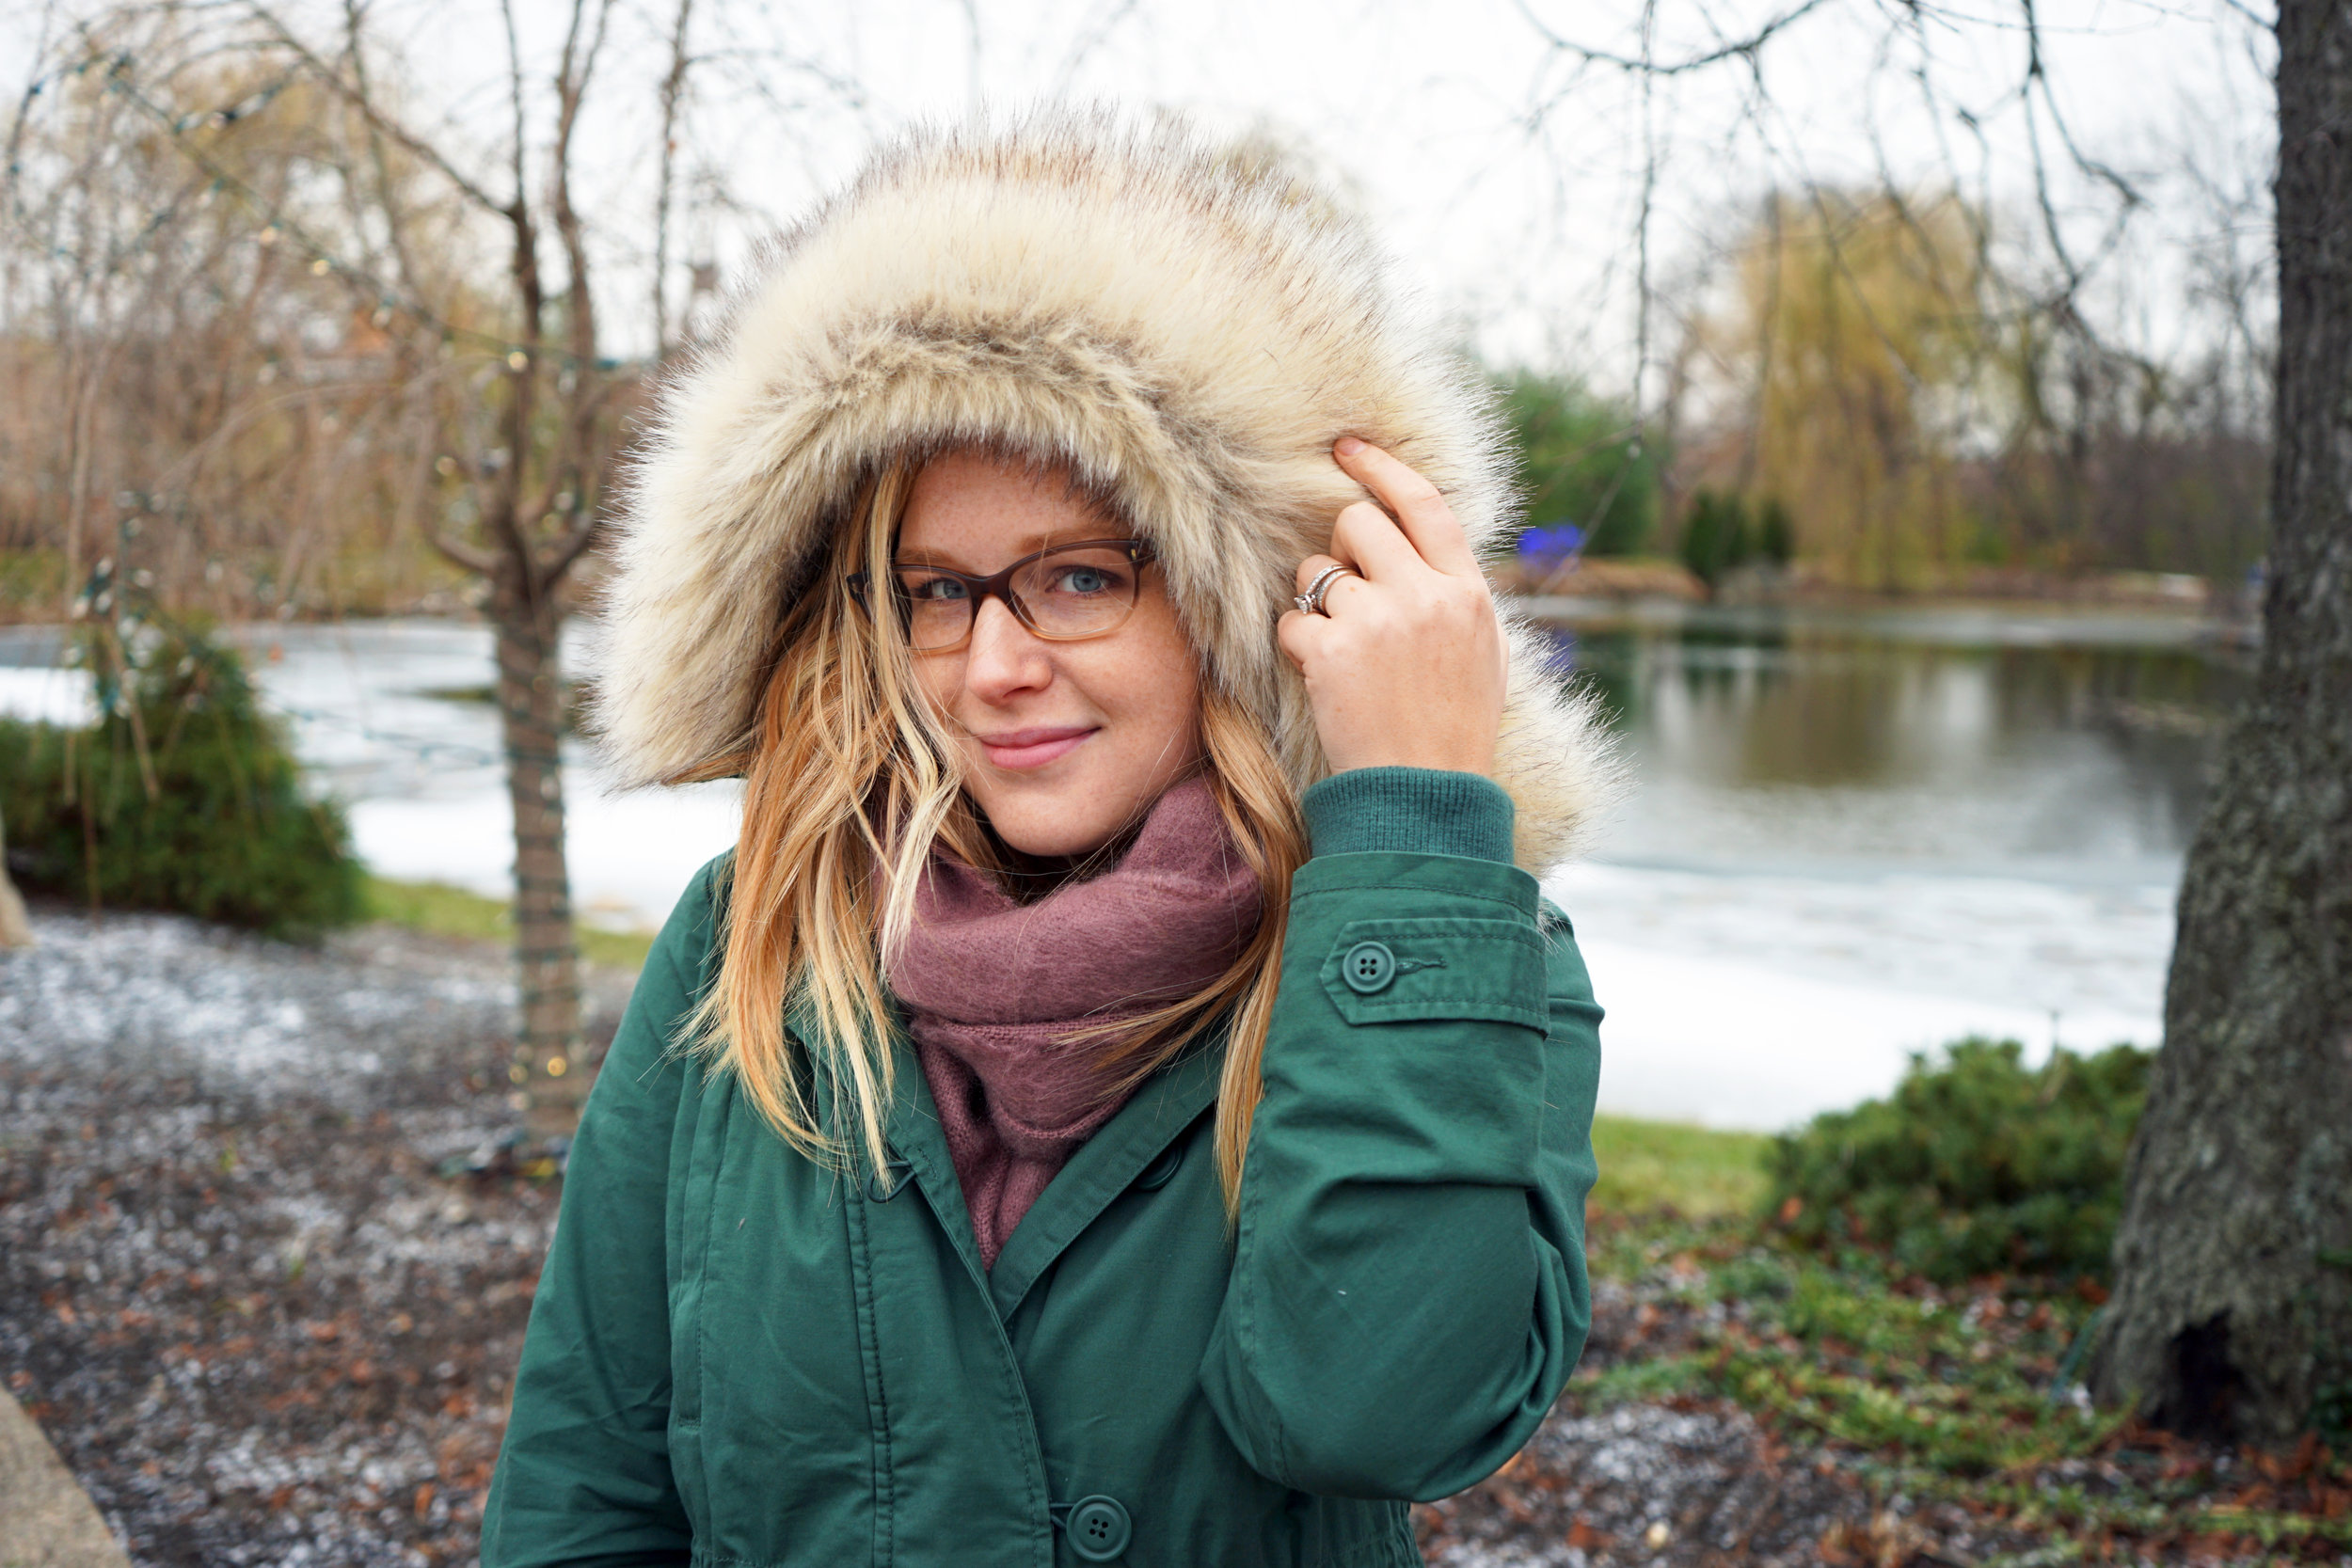 Maggie a la Mode - Asos Supersoft Long Woven Scarf Tassels Dusty Mauve/Pink, Gap 2-in-1 Hooded Parka Cucumber Peel